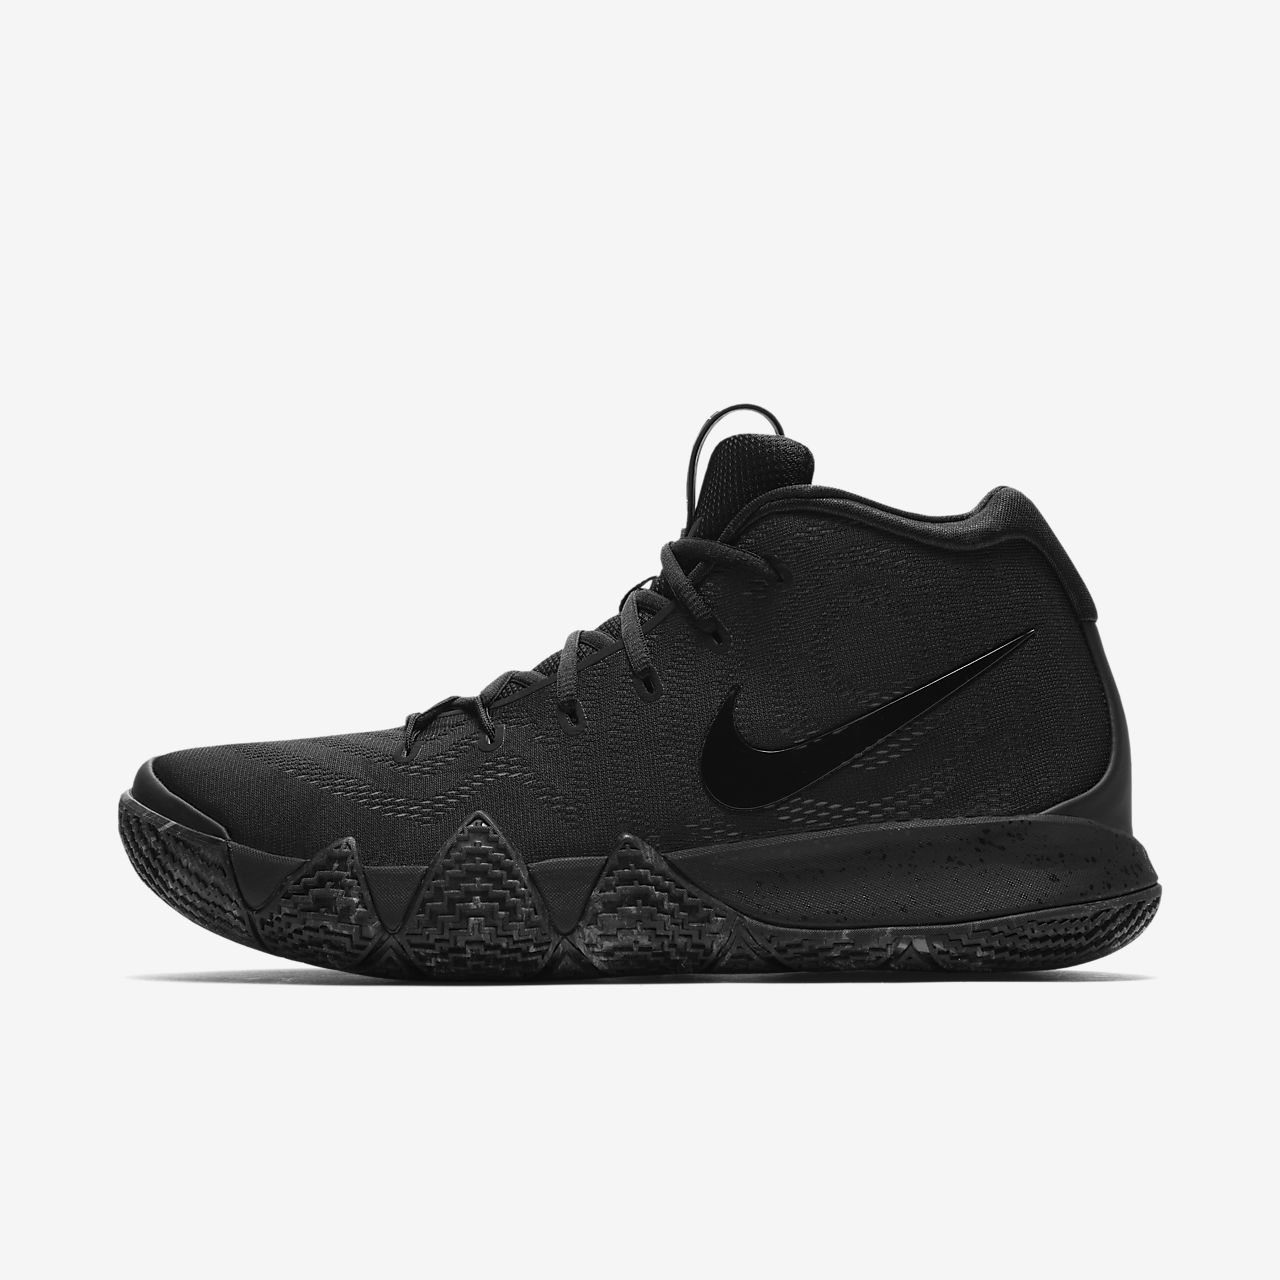 488328402 Kyrie 4 Basketball Shoe. Nike.com CA